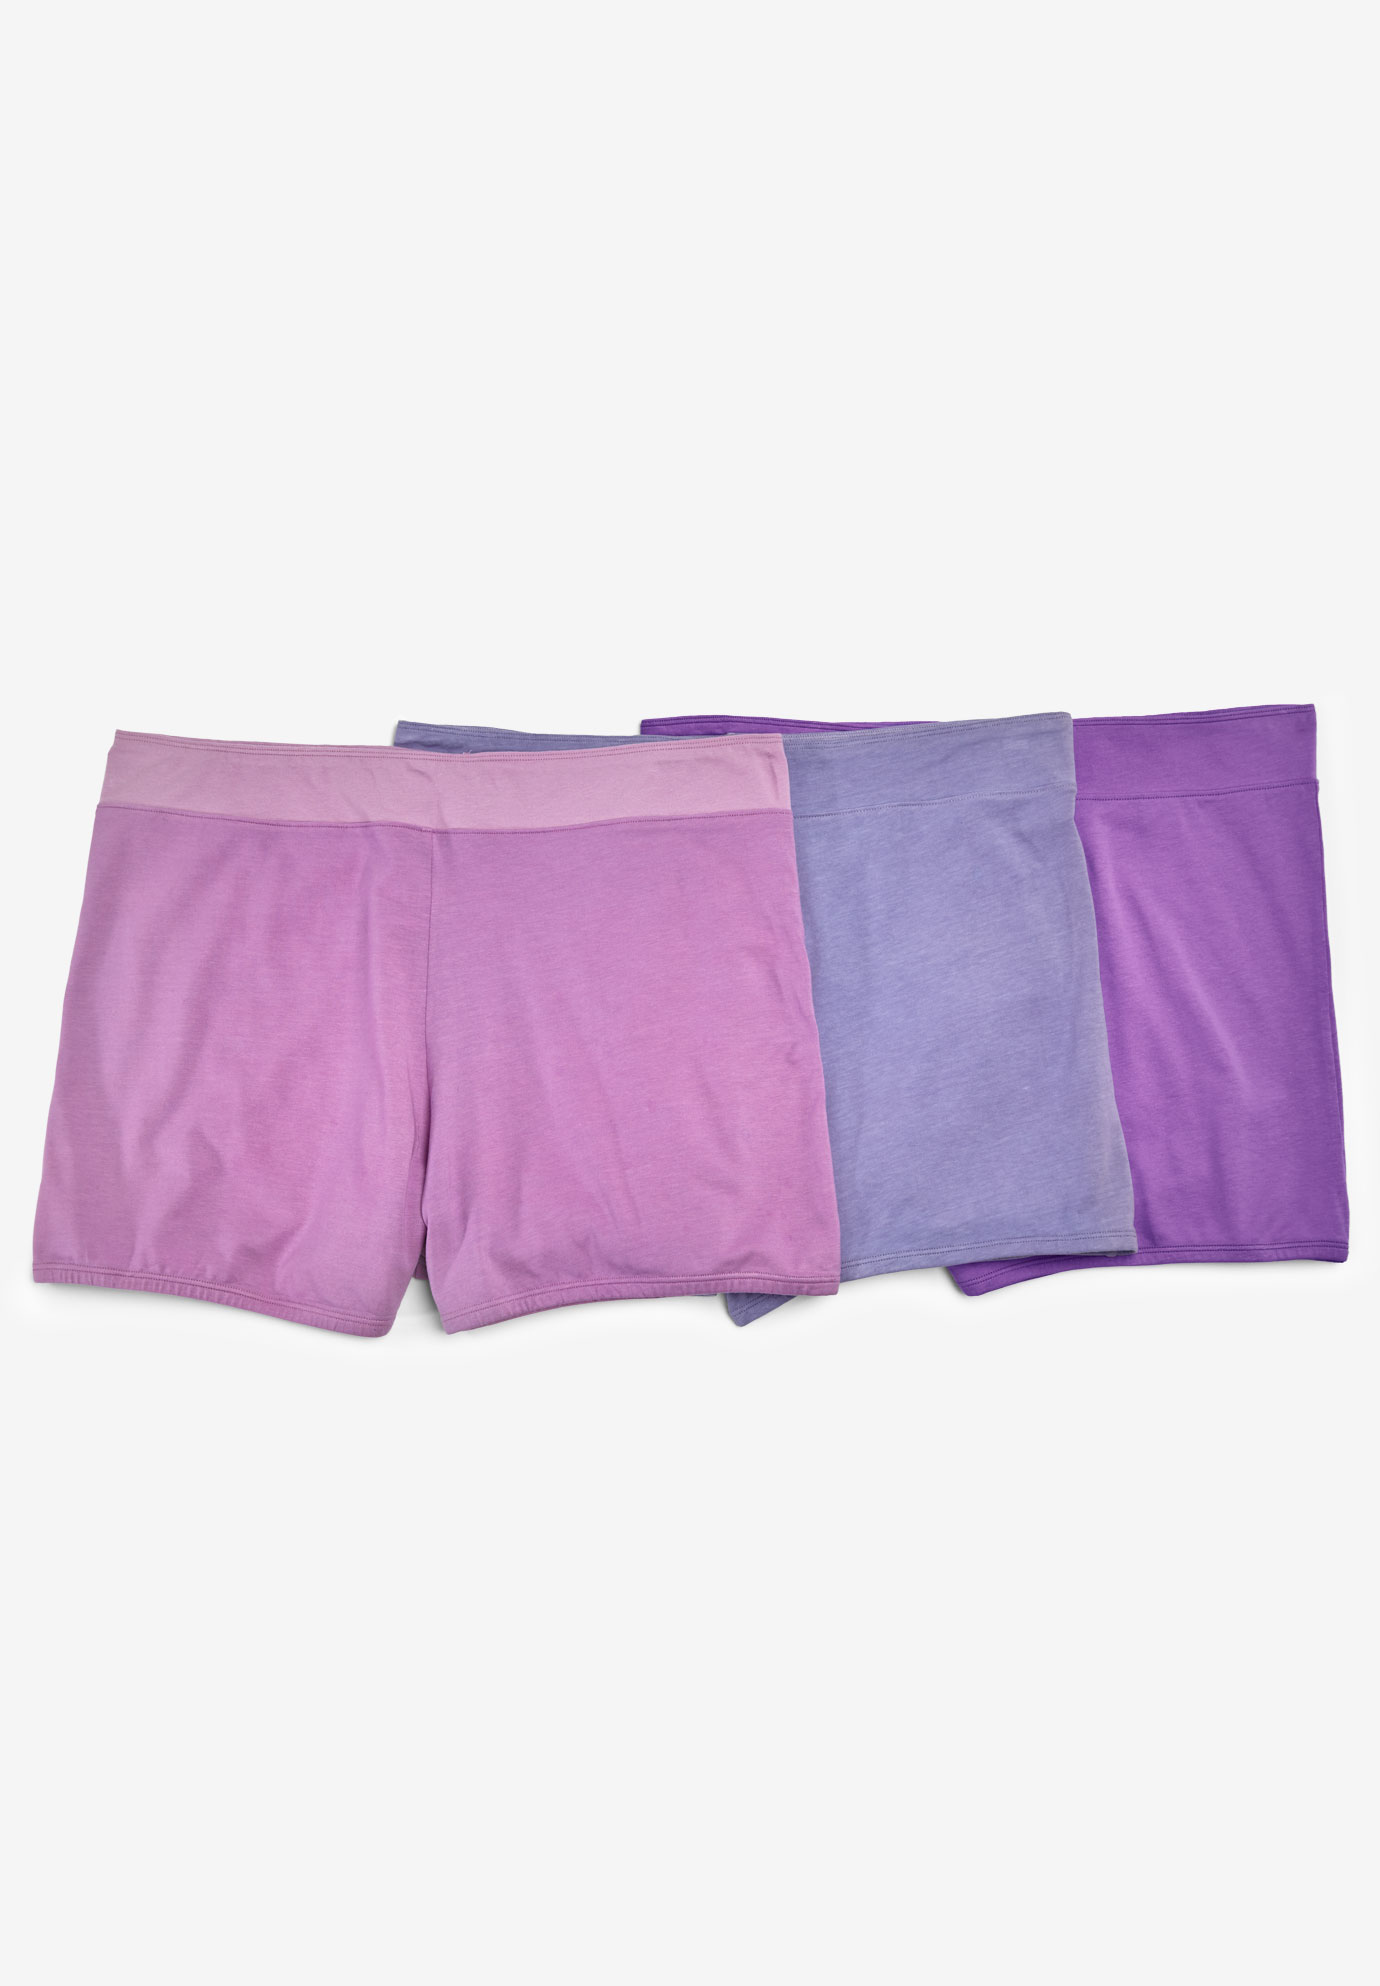 3-Pack Boyshorts by Comfort Choice®,